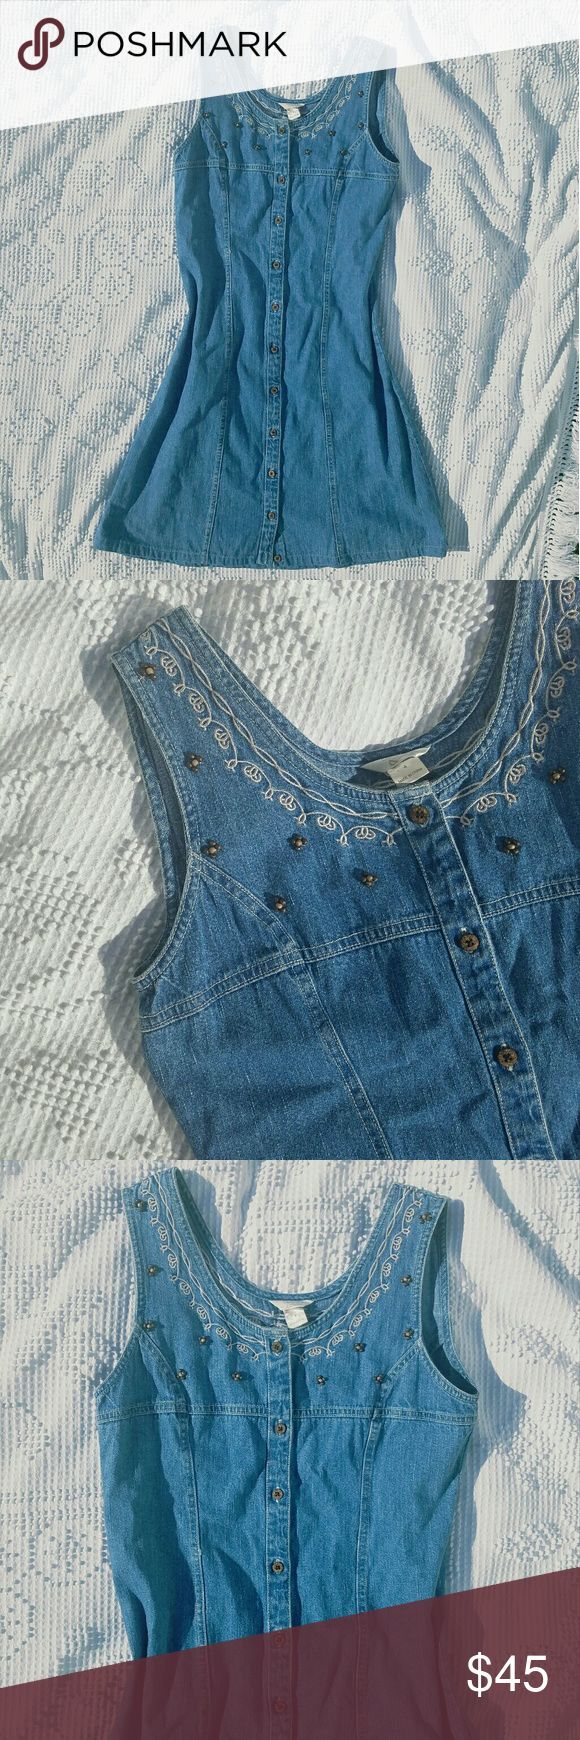 Vtg Denim Dress 90's jean jumper / dress. Front button closure  Bead and embroidered detail around neckline  Slightly fitted Size 4, true to size   Tags Grunge goth pastel vintage retro hipster hippie indie alternative punk rock lolita Vintage Dresses Mini